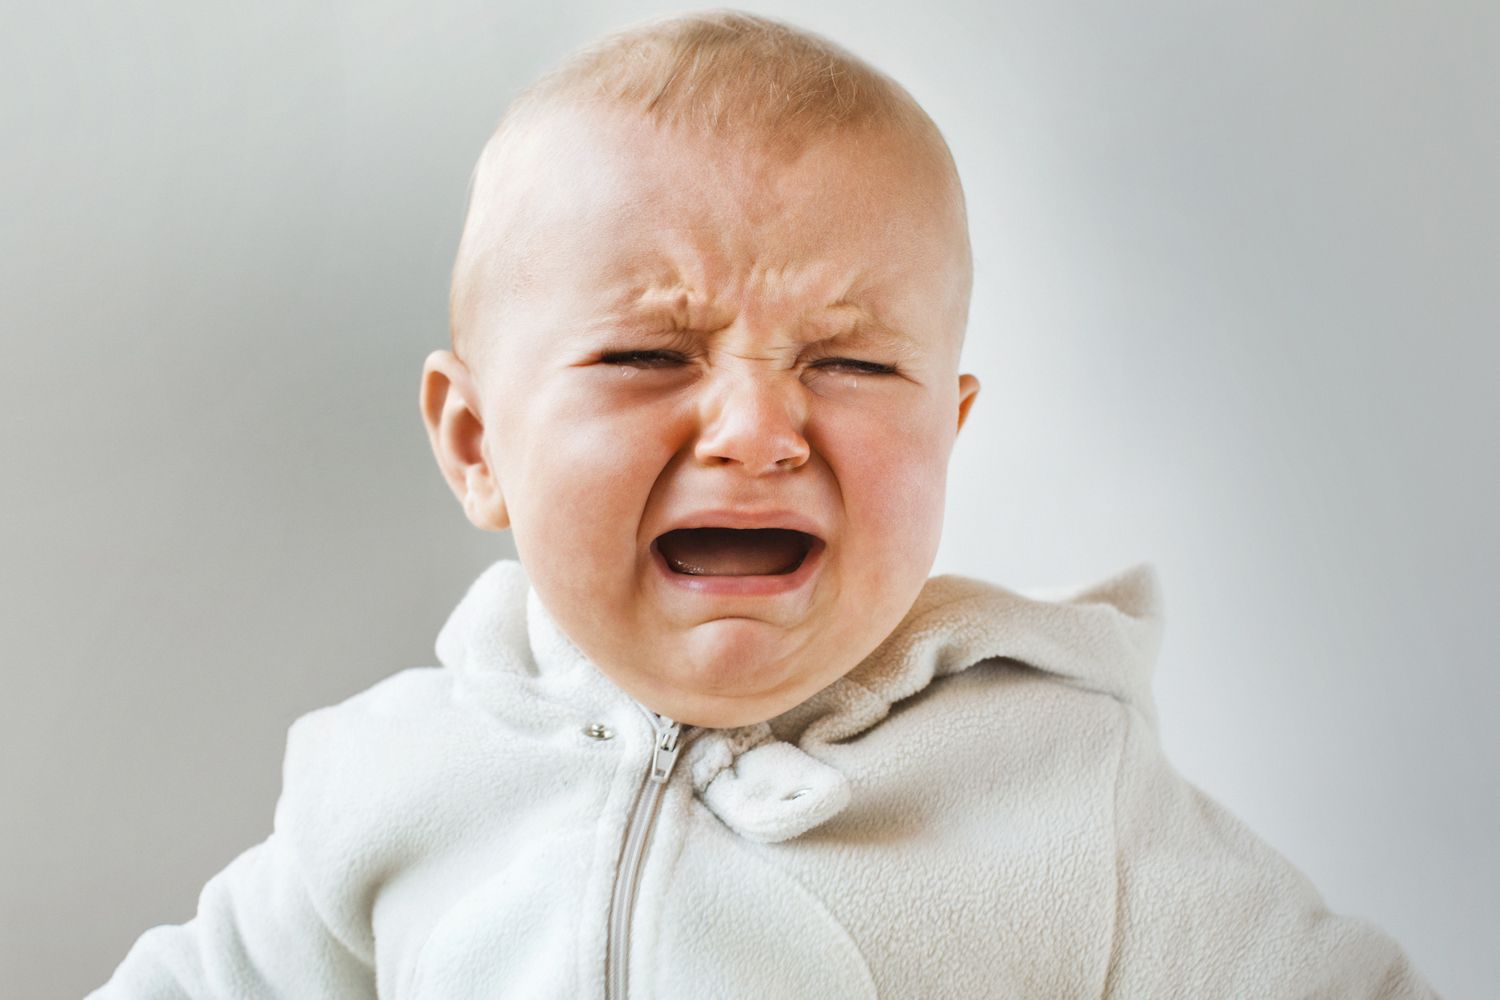 Close-up of a crying baby.